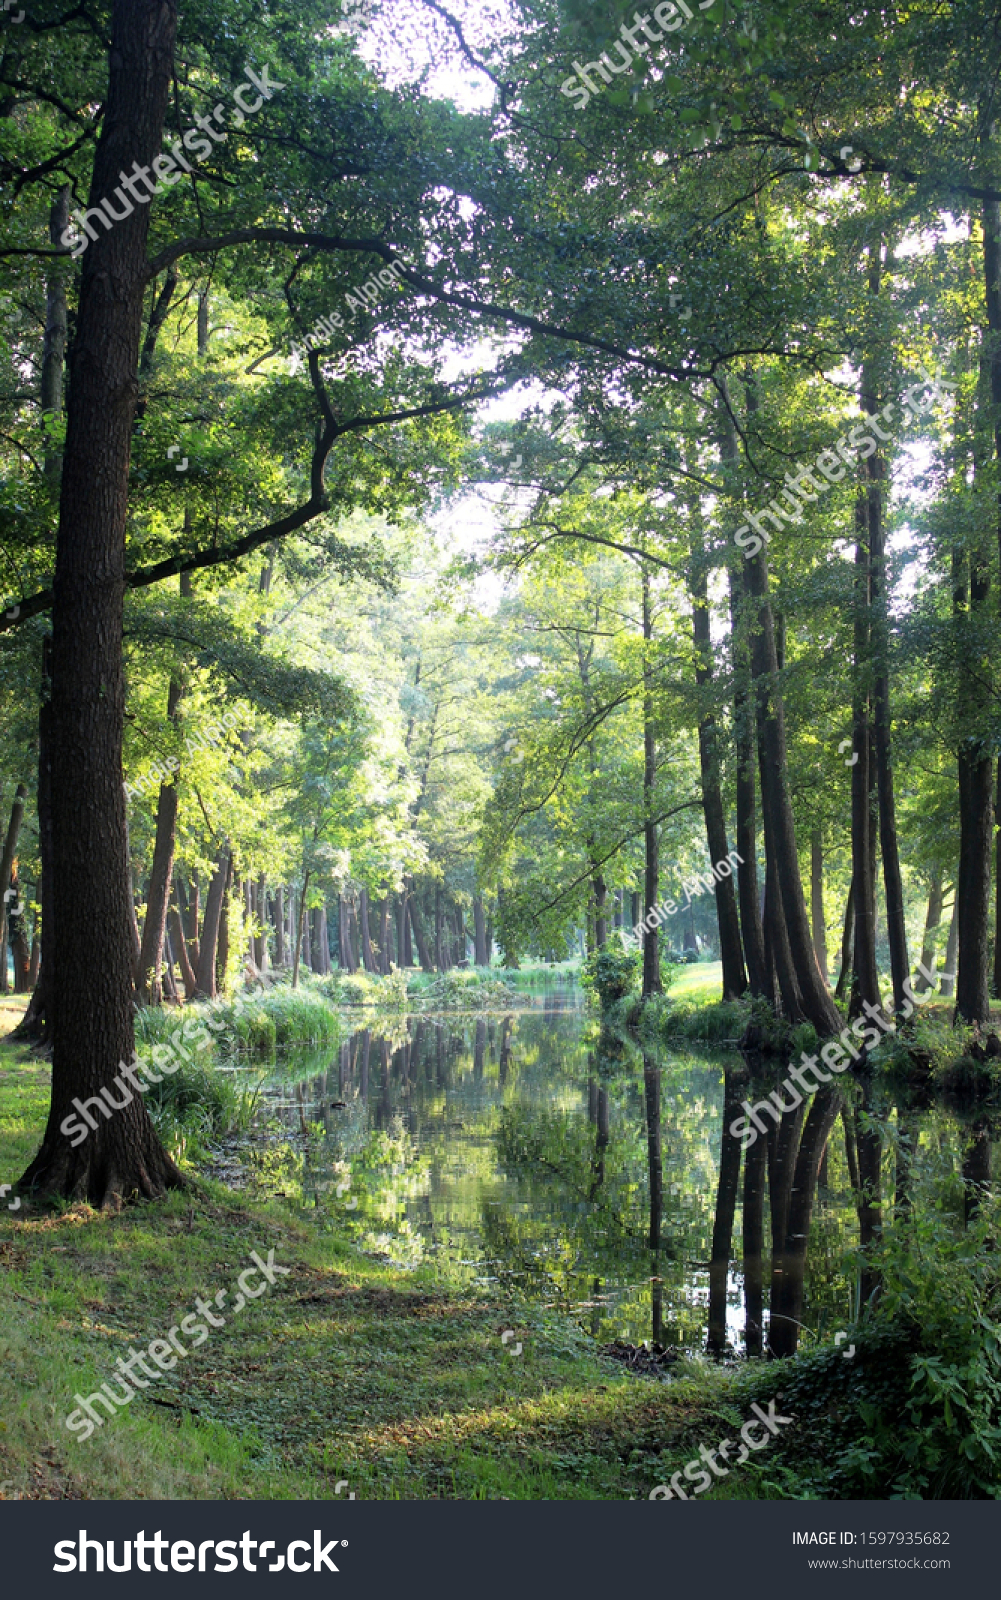 One of thousands of natural and man made water ways in the forest called Spreewald. It's a region in eastern Germany 100 cilometers in the south of Berlin.